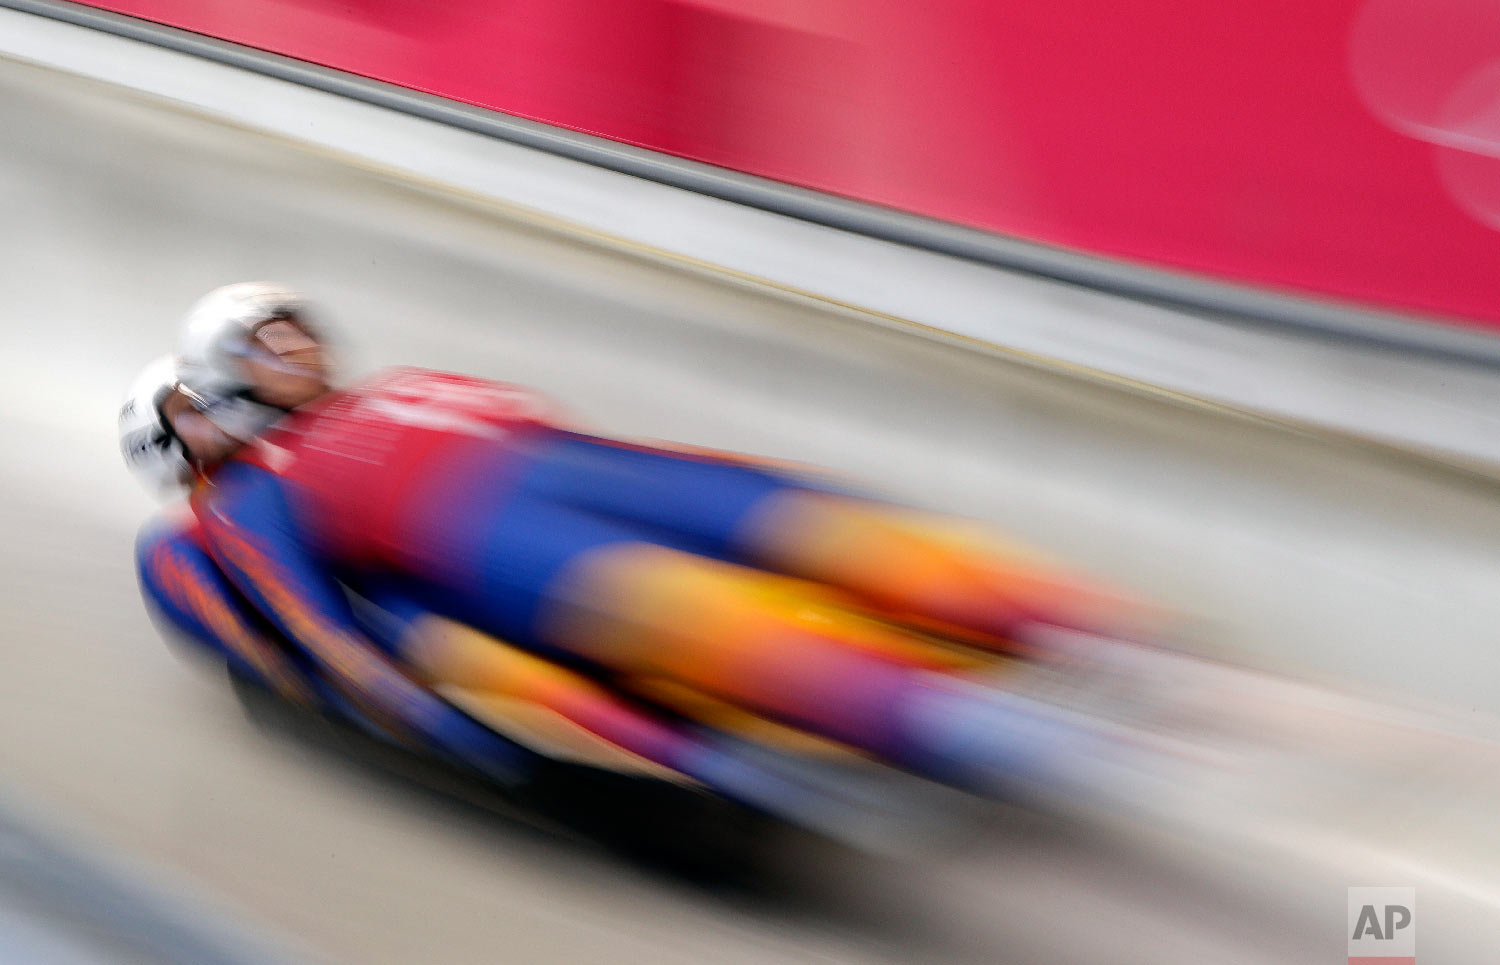 Cosmin Atodiresei and Stefan Musei of Romania start a run during the doubles luge training at the 2018 Winter Olympics in Pyeongchang, South Korea, Monday, Feb. 12, 2018. (AP Photo/Wong Maye-E)